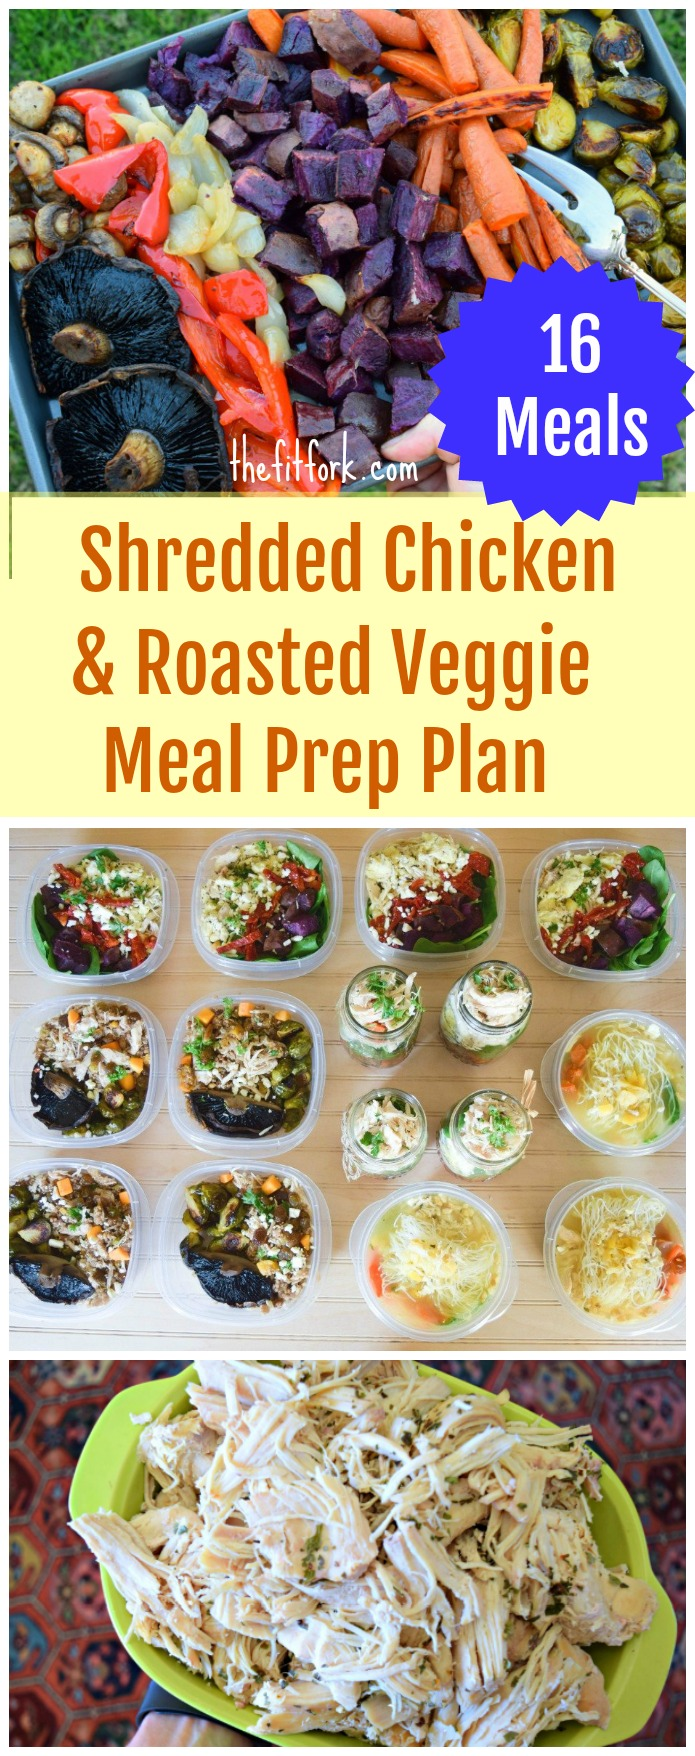 Shredded Chicken & Roasted Veggie Meal Prep Plan - 1 protein, 4 recipes, 16 meals